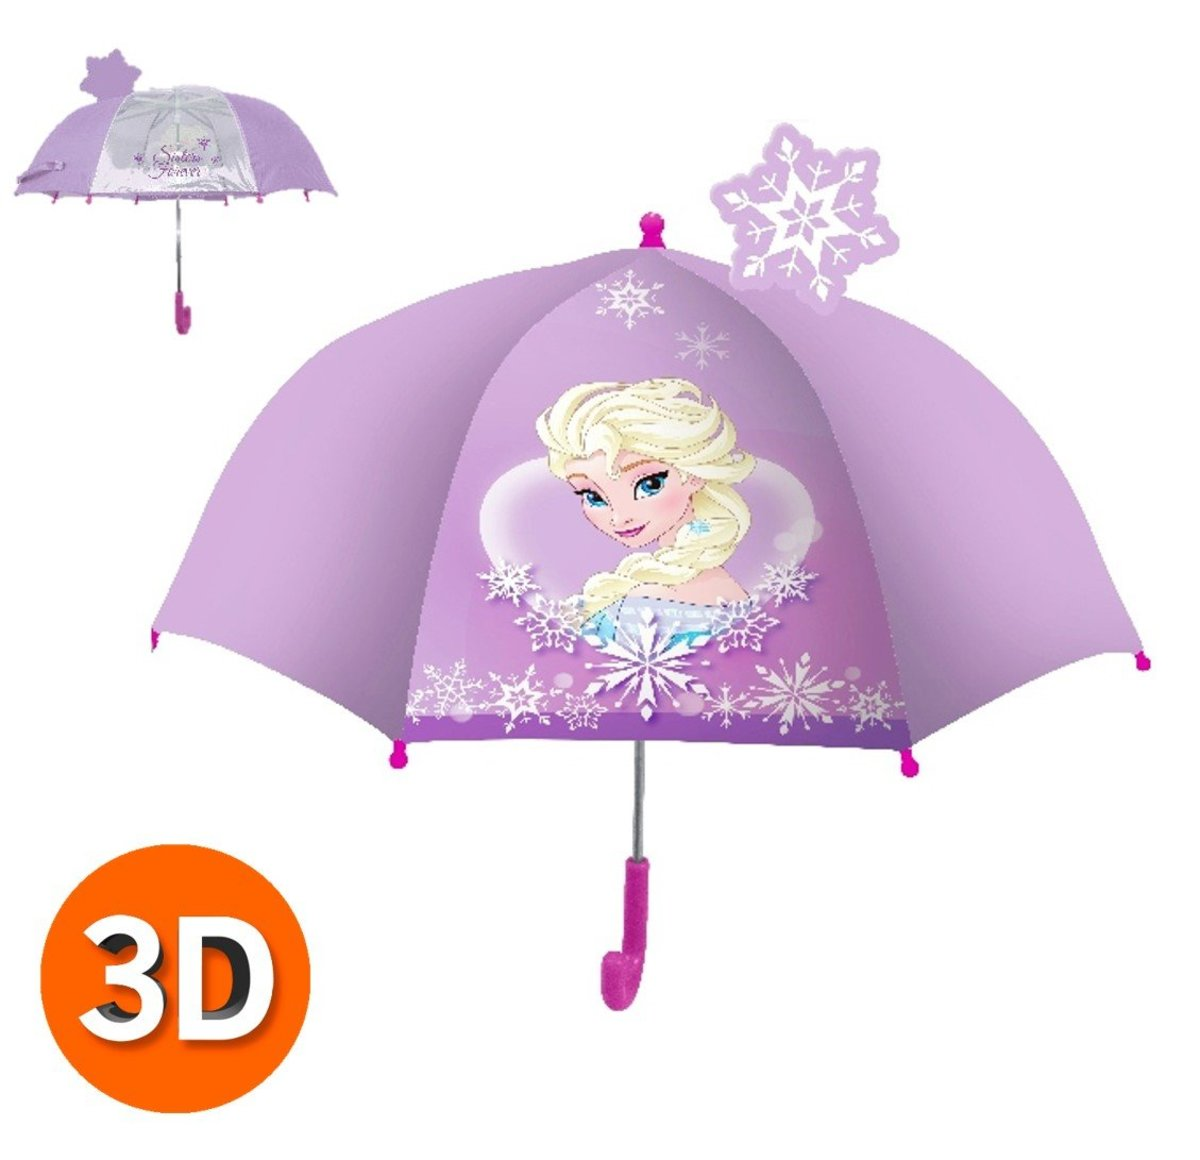 3D Umbrella B (Licensed by Disney)